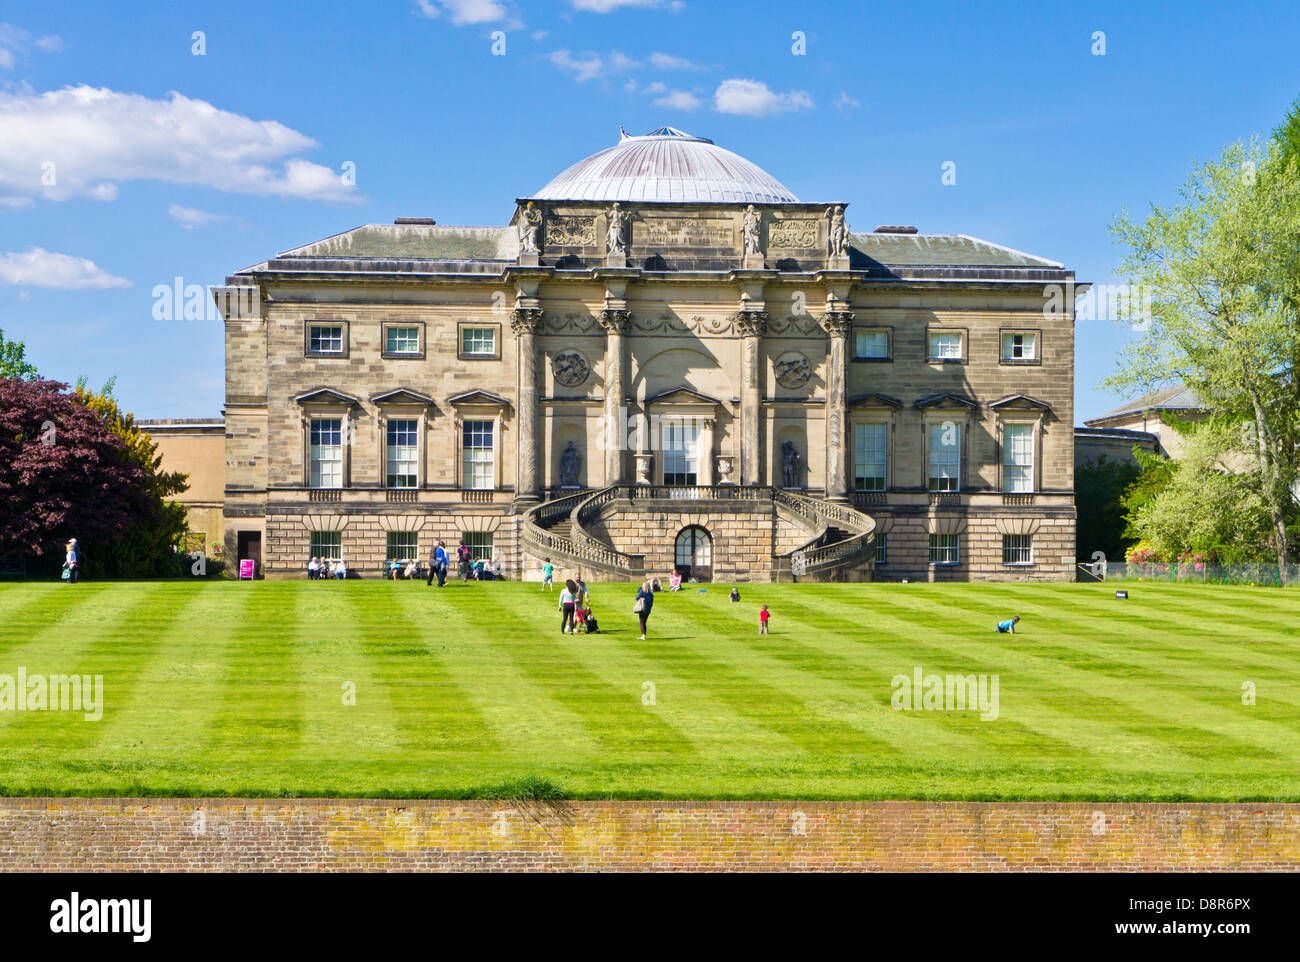 South Front Kedleston Hall and green lawns Derbyshire England UK Europe EU - Stock Image